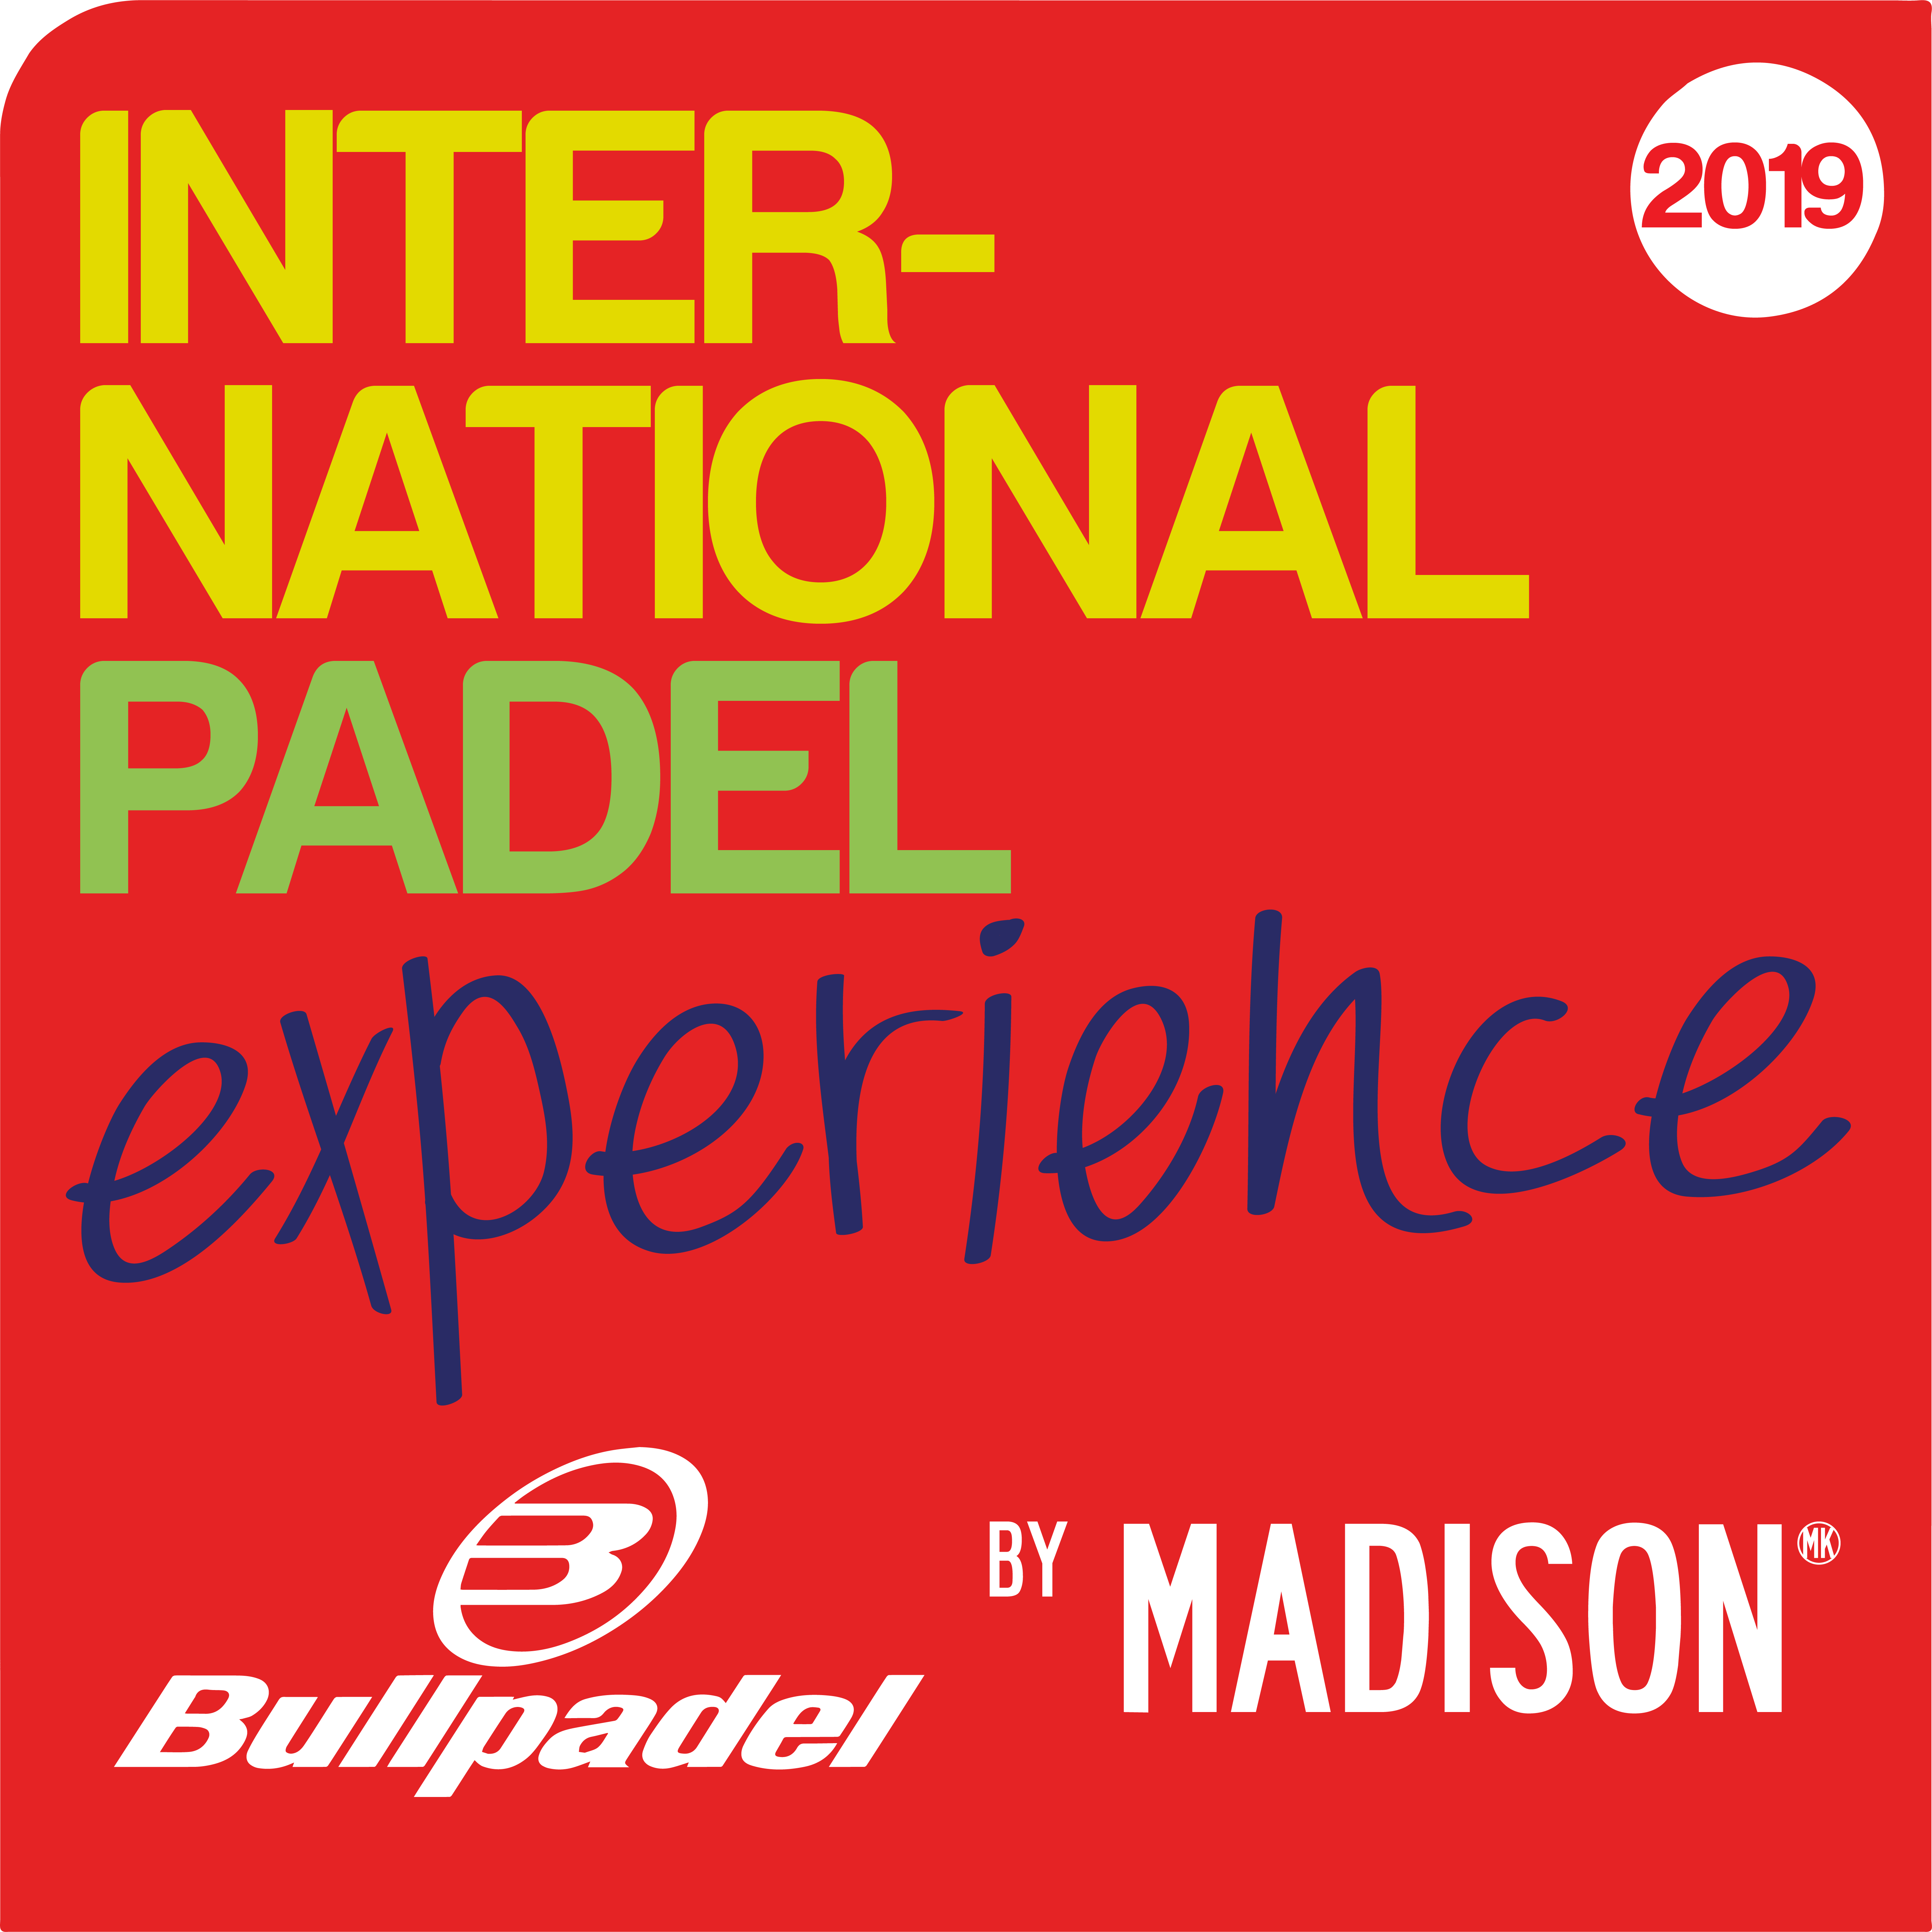 INTERNATIONAL PADEL EXPERIENCE BY MADISON